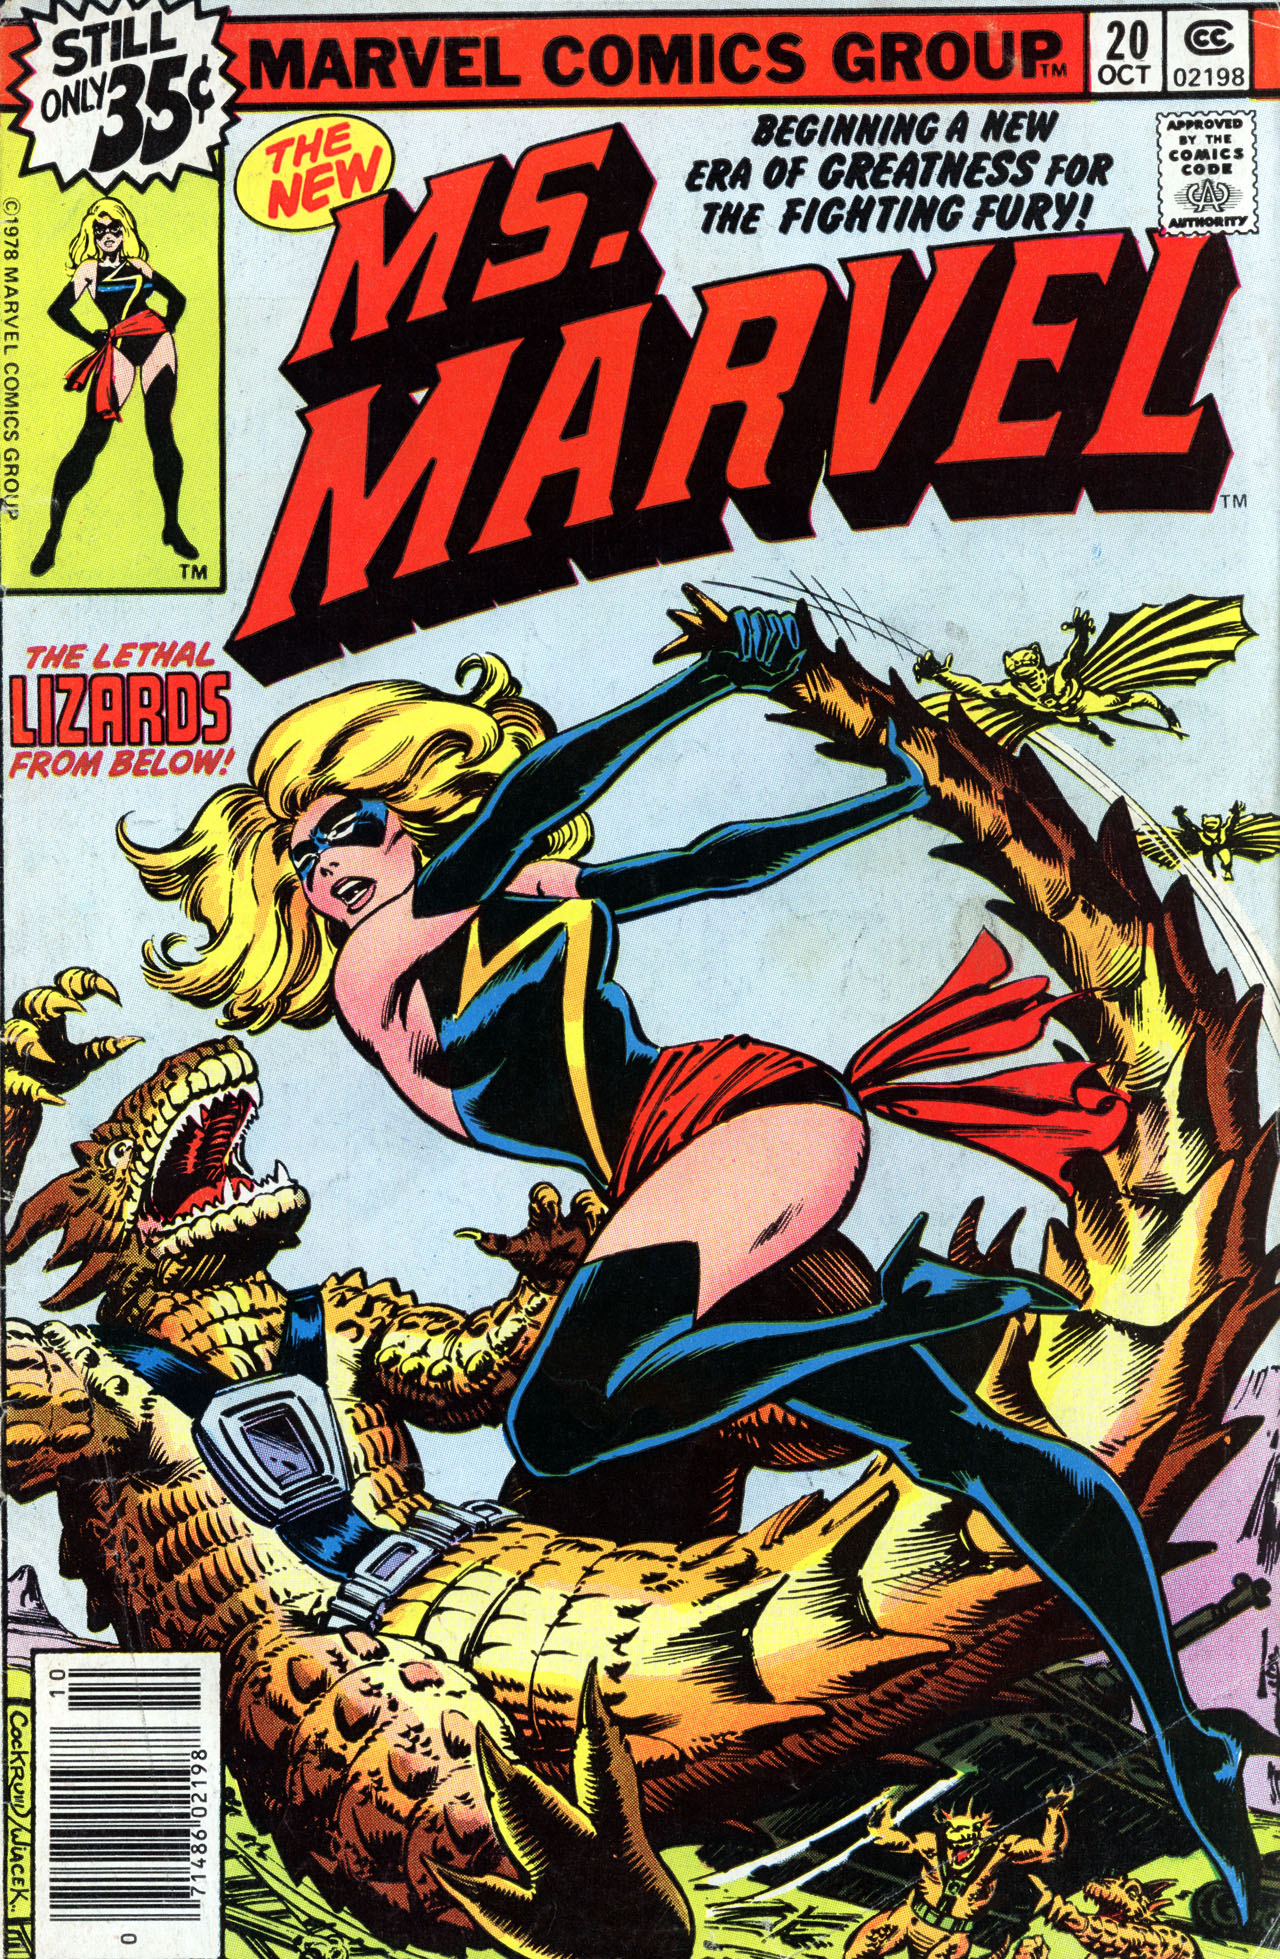 Ms. Marvel (1977) #20, cover penciled by Dave Cockrum & inked by Bob Wiacek.